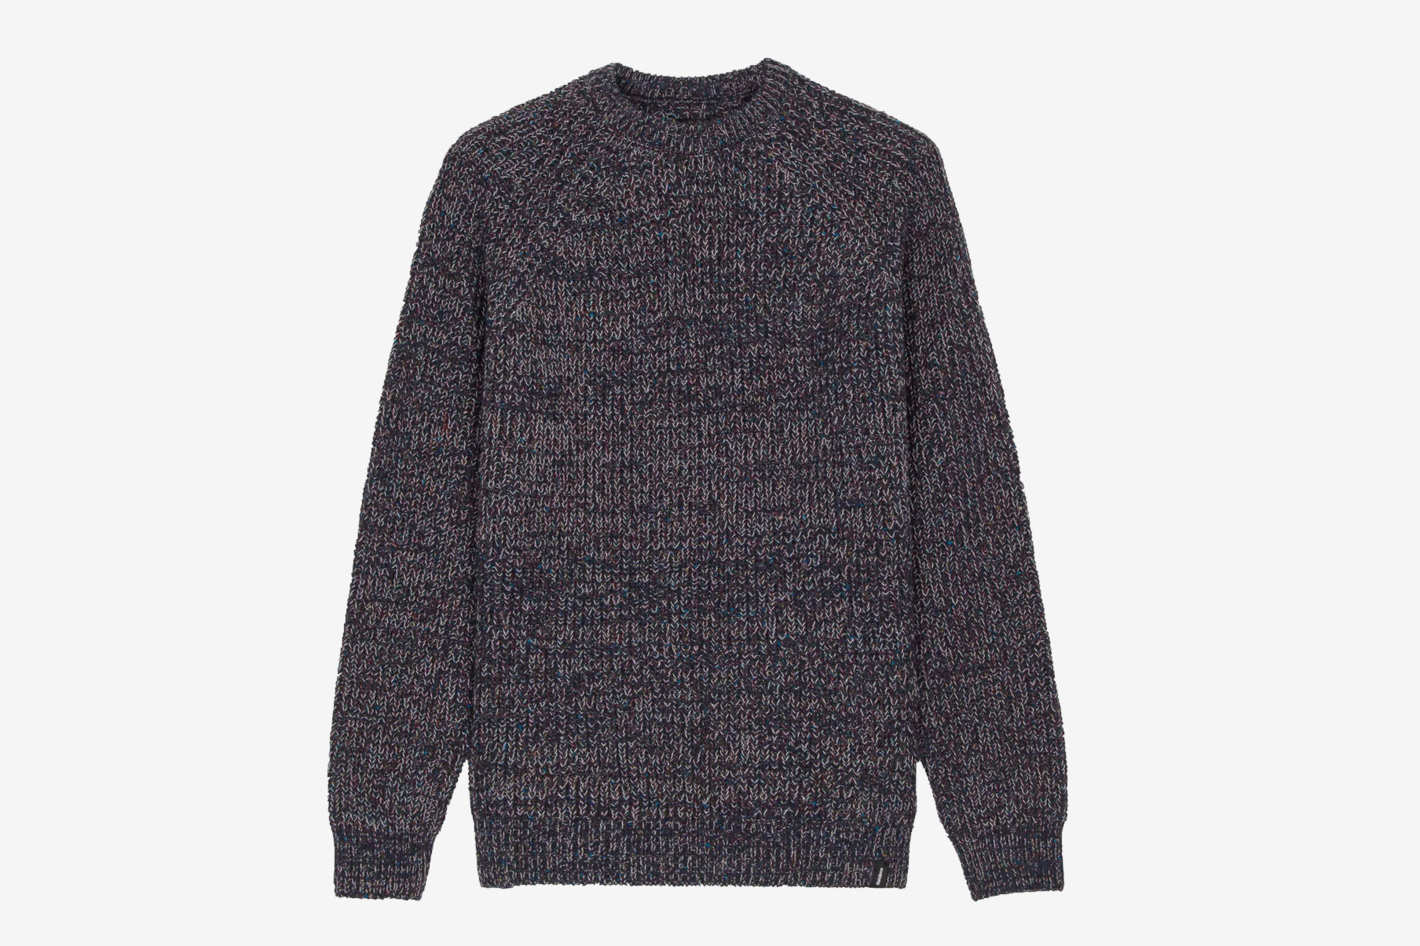 Finisterre Branek Men's Crew